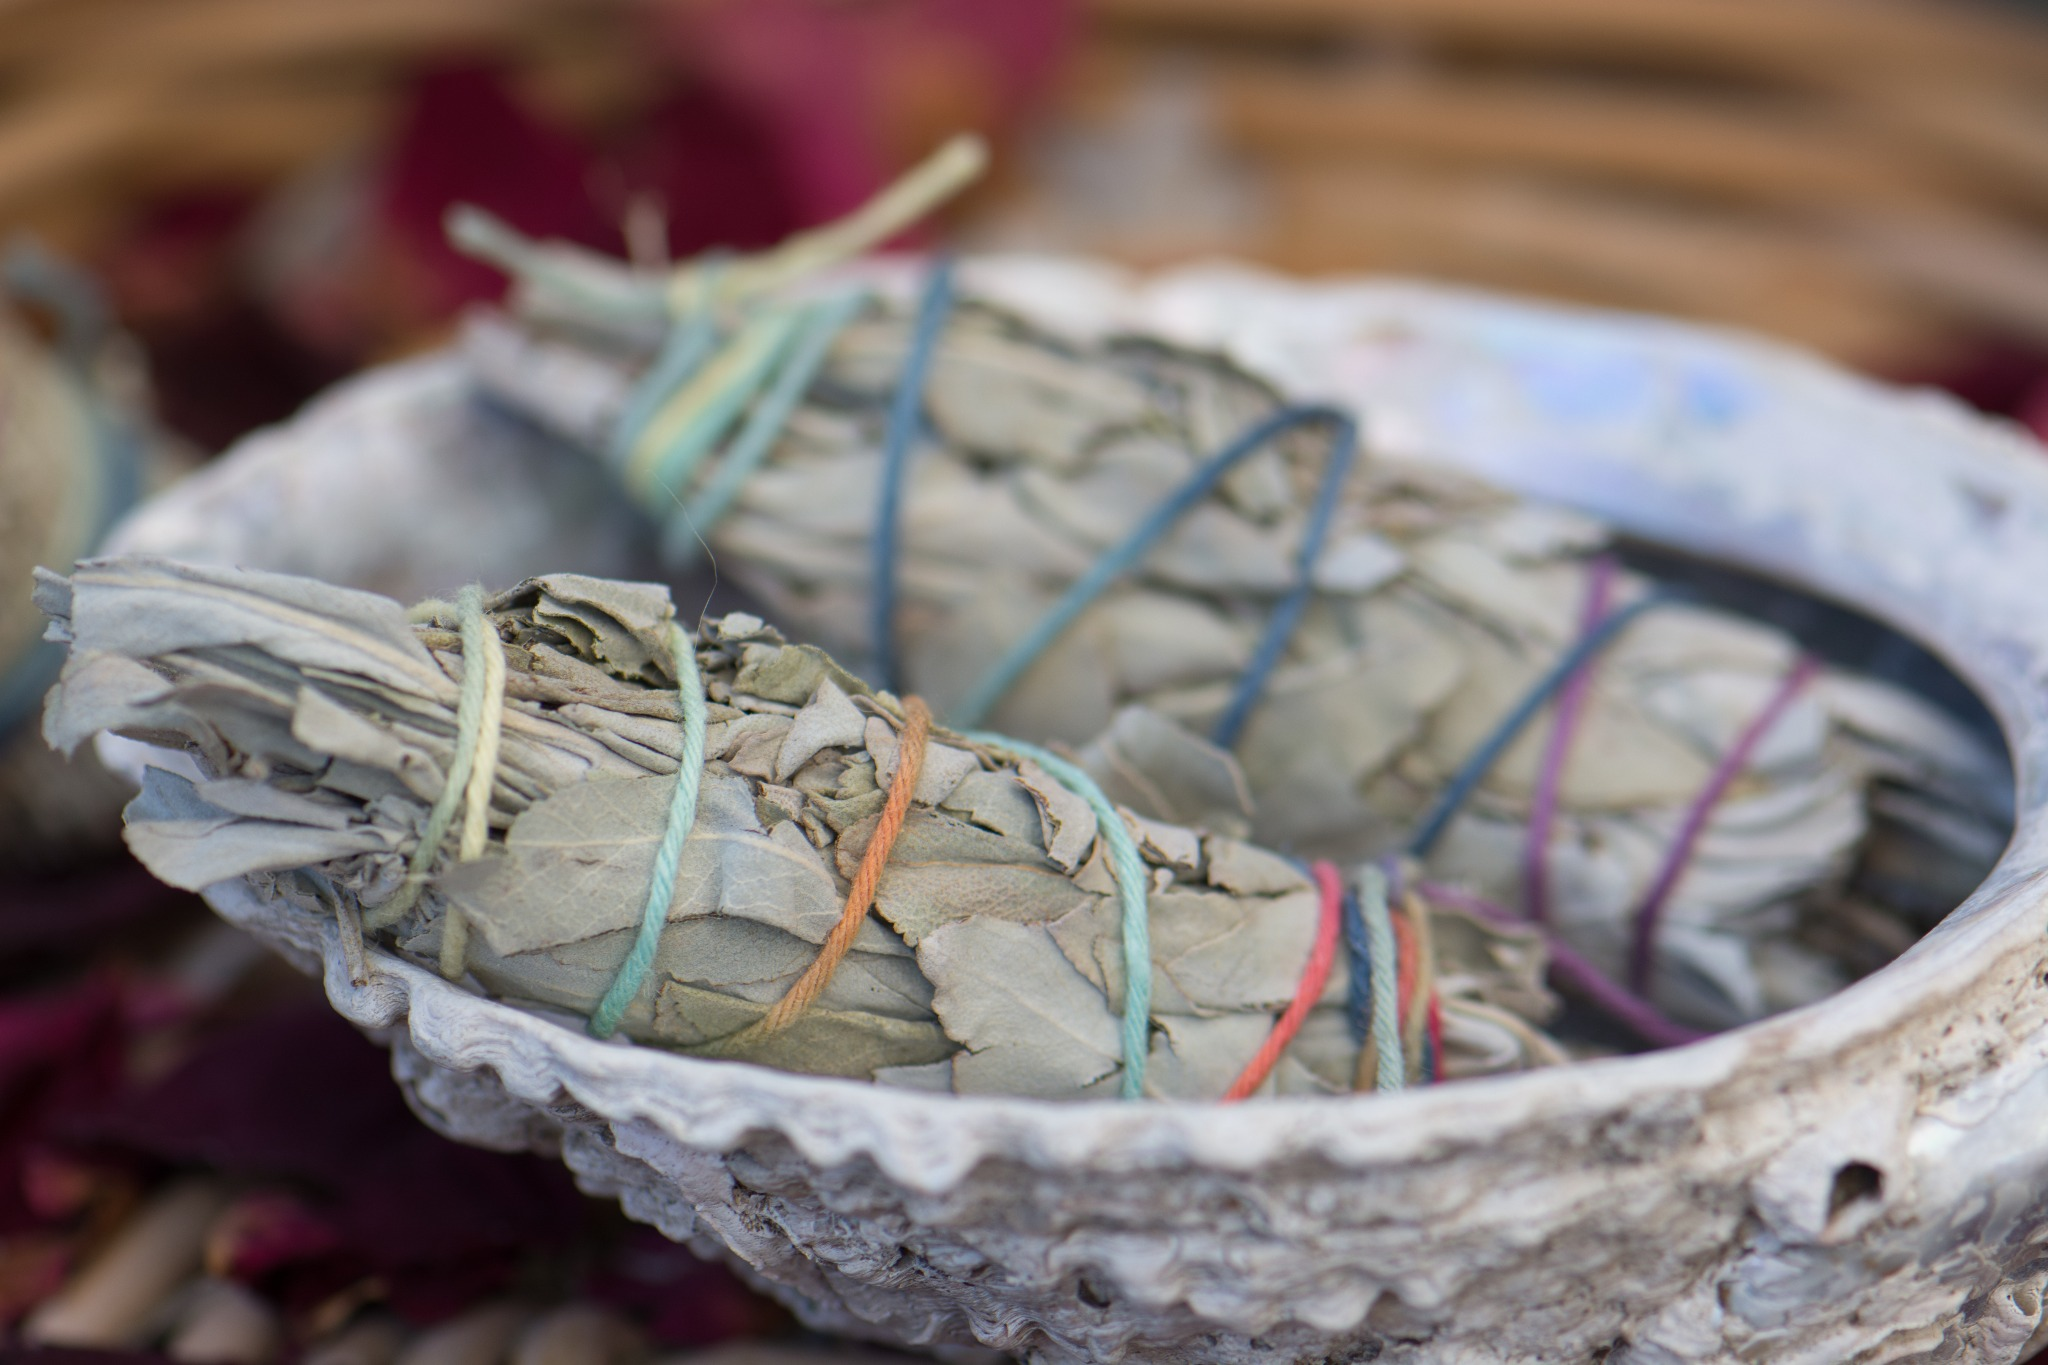 Sage bundles for smudging. Smudging is a great way to celebrate Beltane.